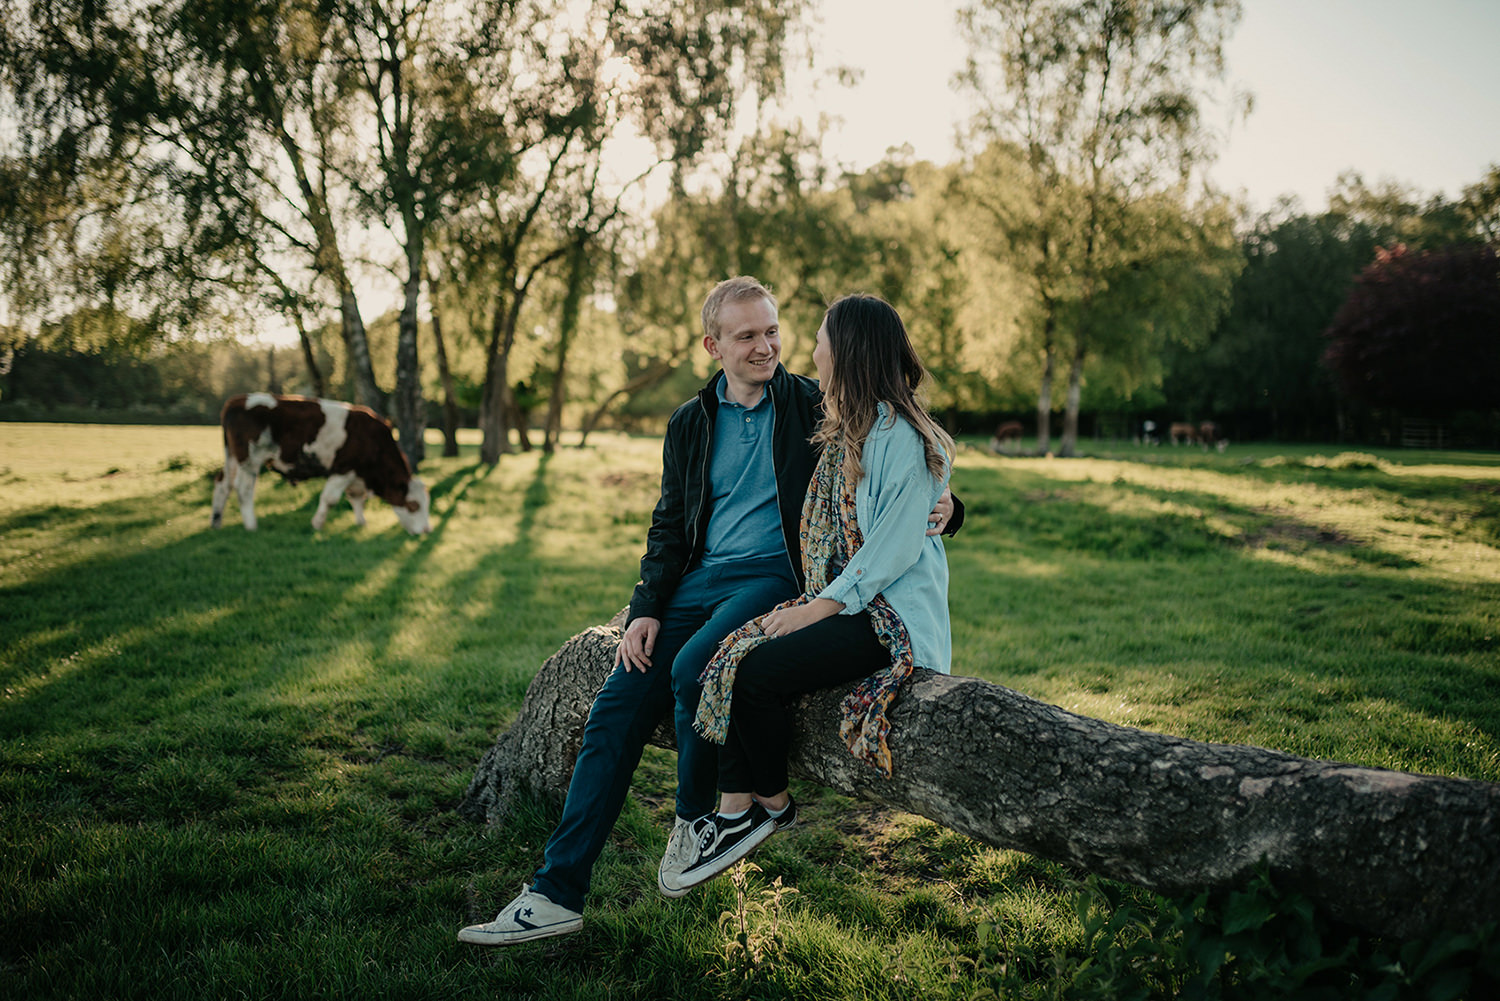 Engagement photoshoot in Marbury Park , Northwich, Cheshire